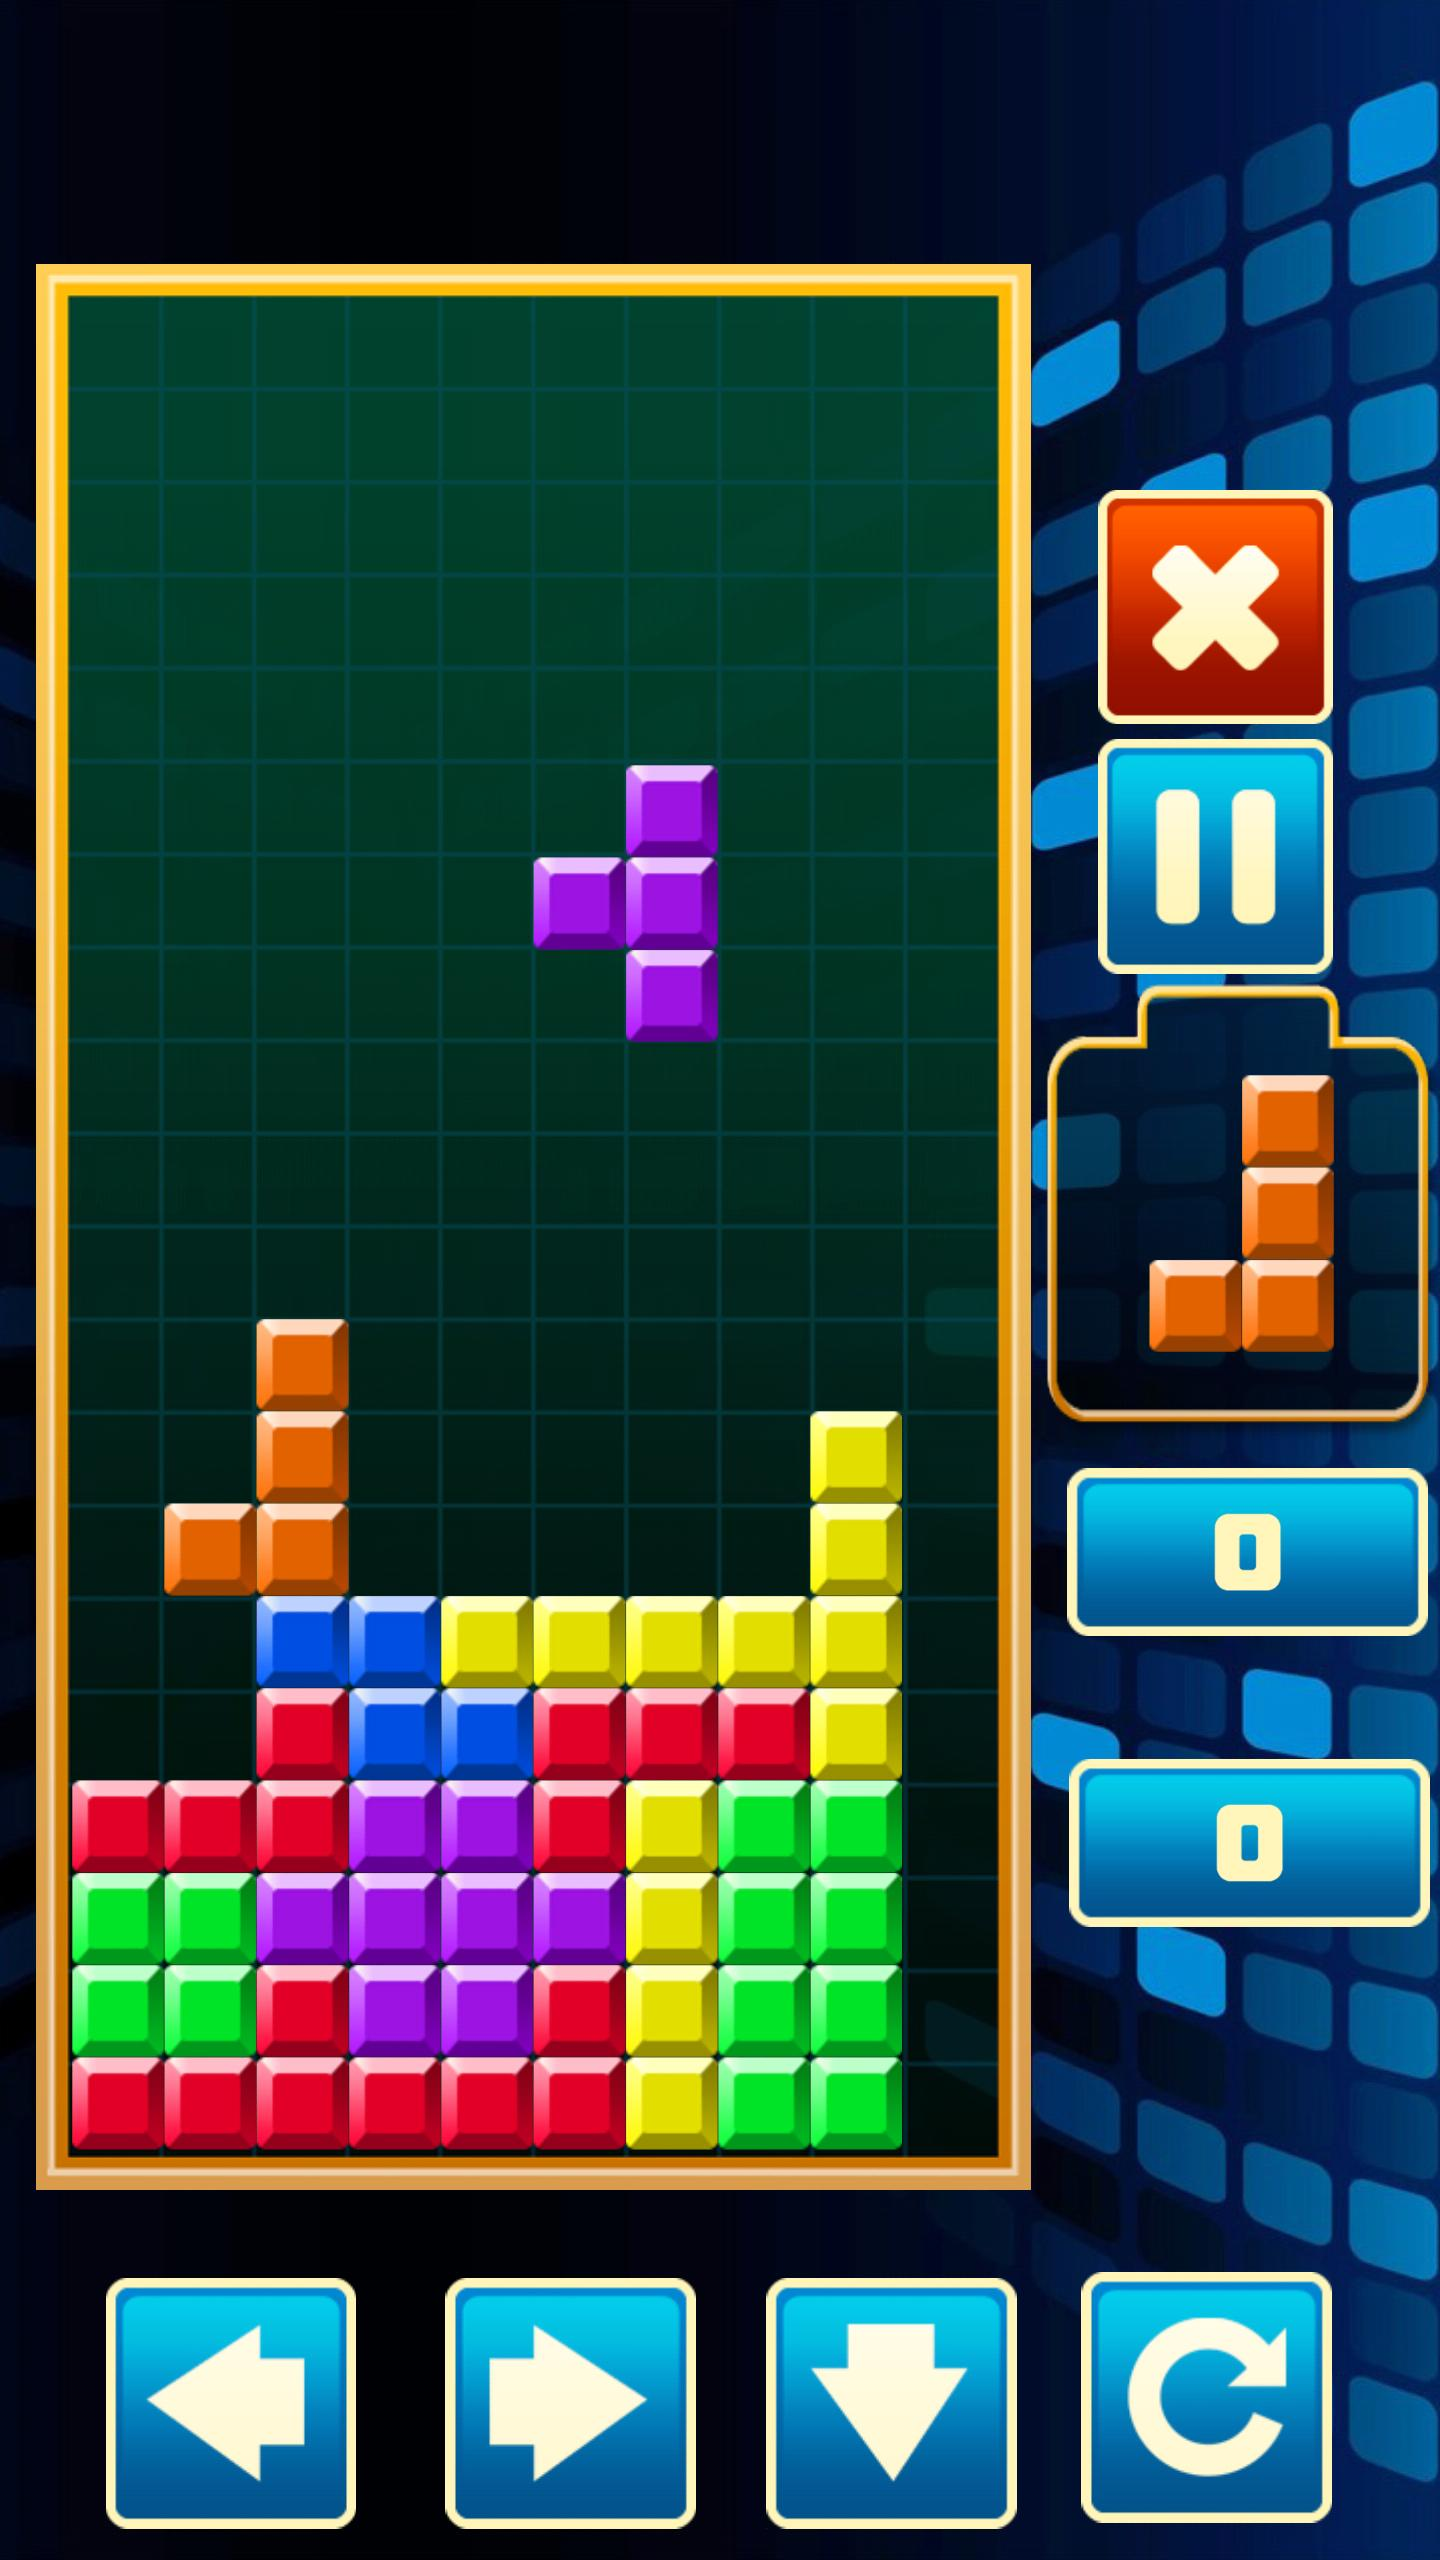 Tetris Brick Classic Puzzle for Android - APK Download